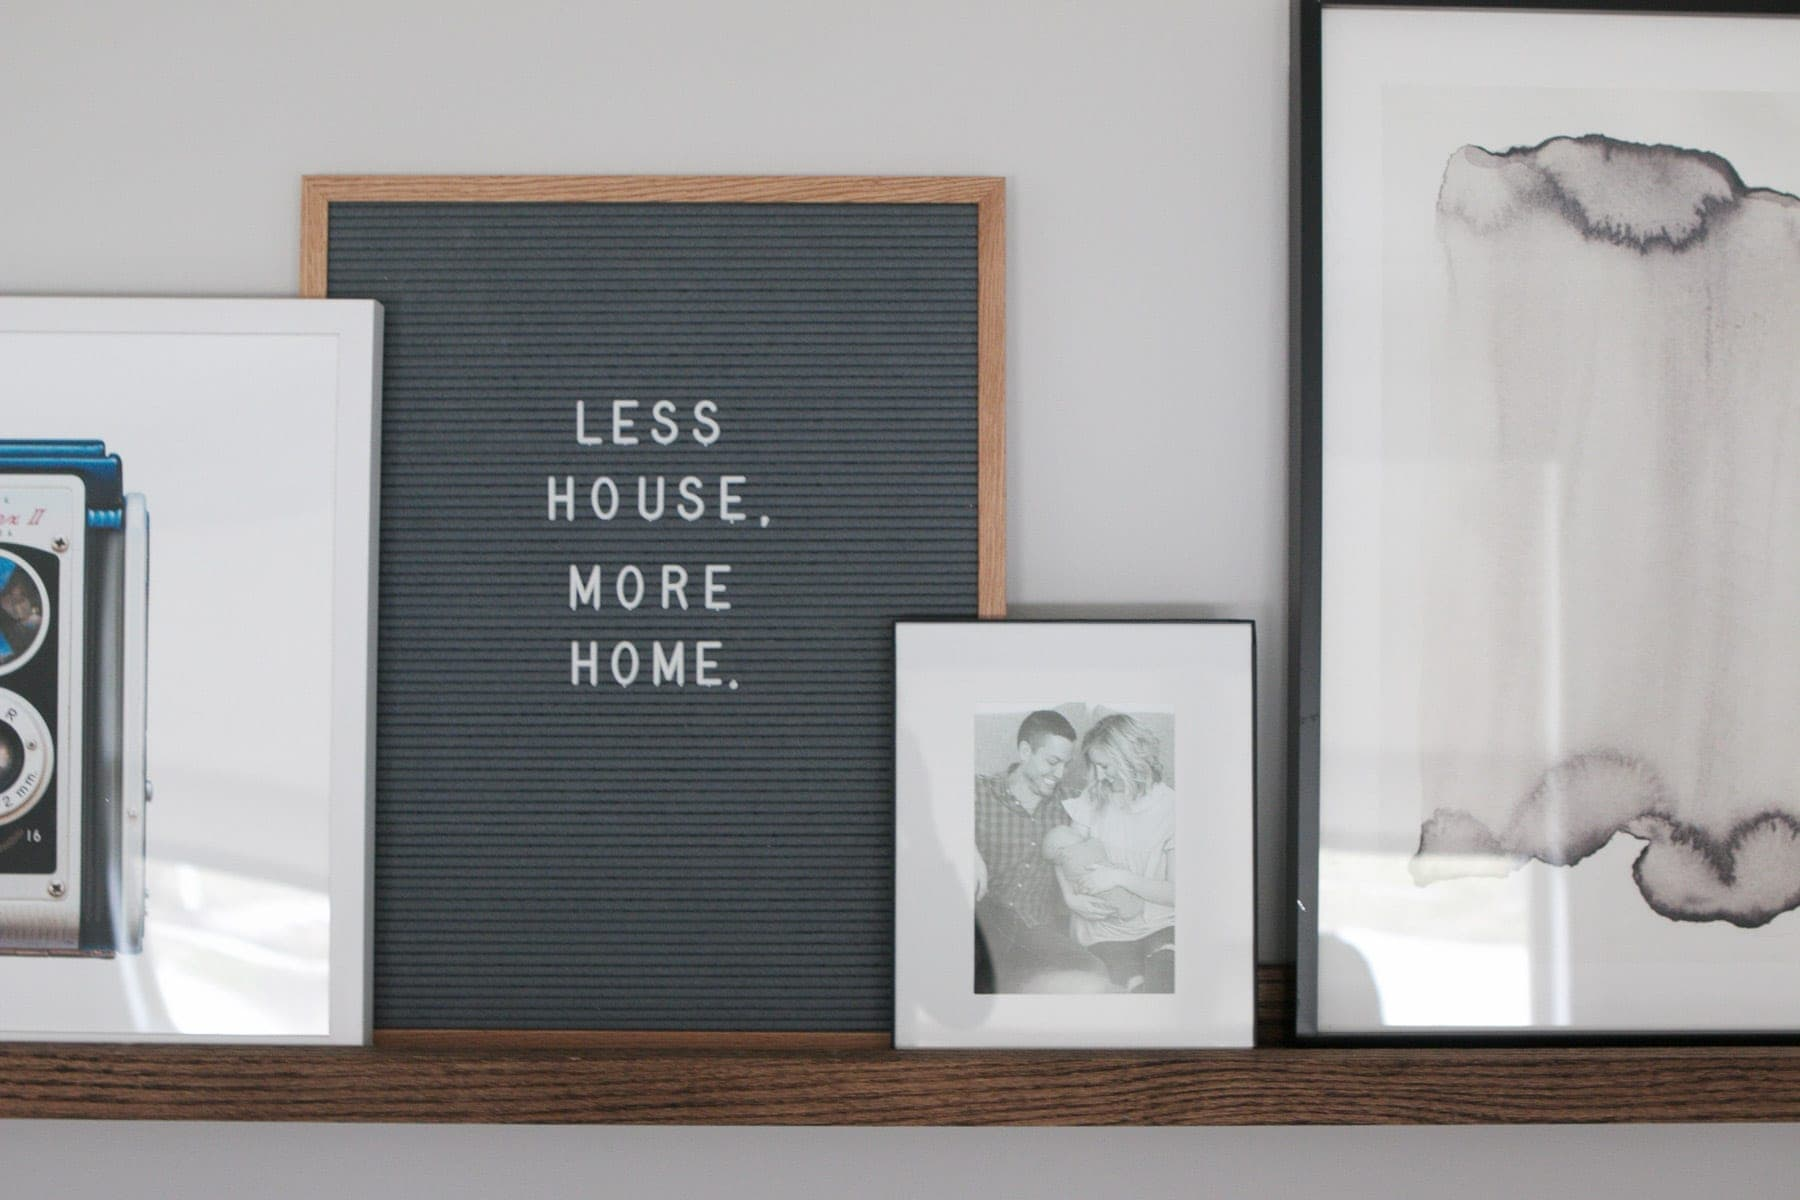 Add a letterfolk board to your picture ledge so you can write fun quotes on there.